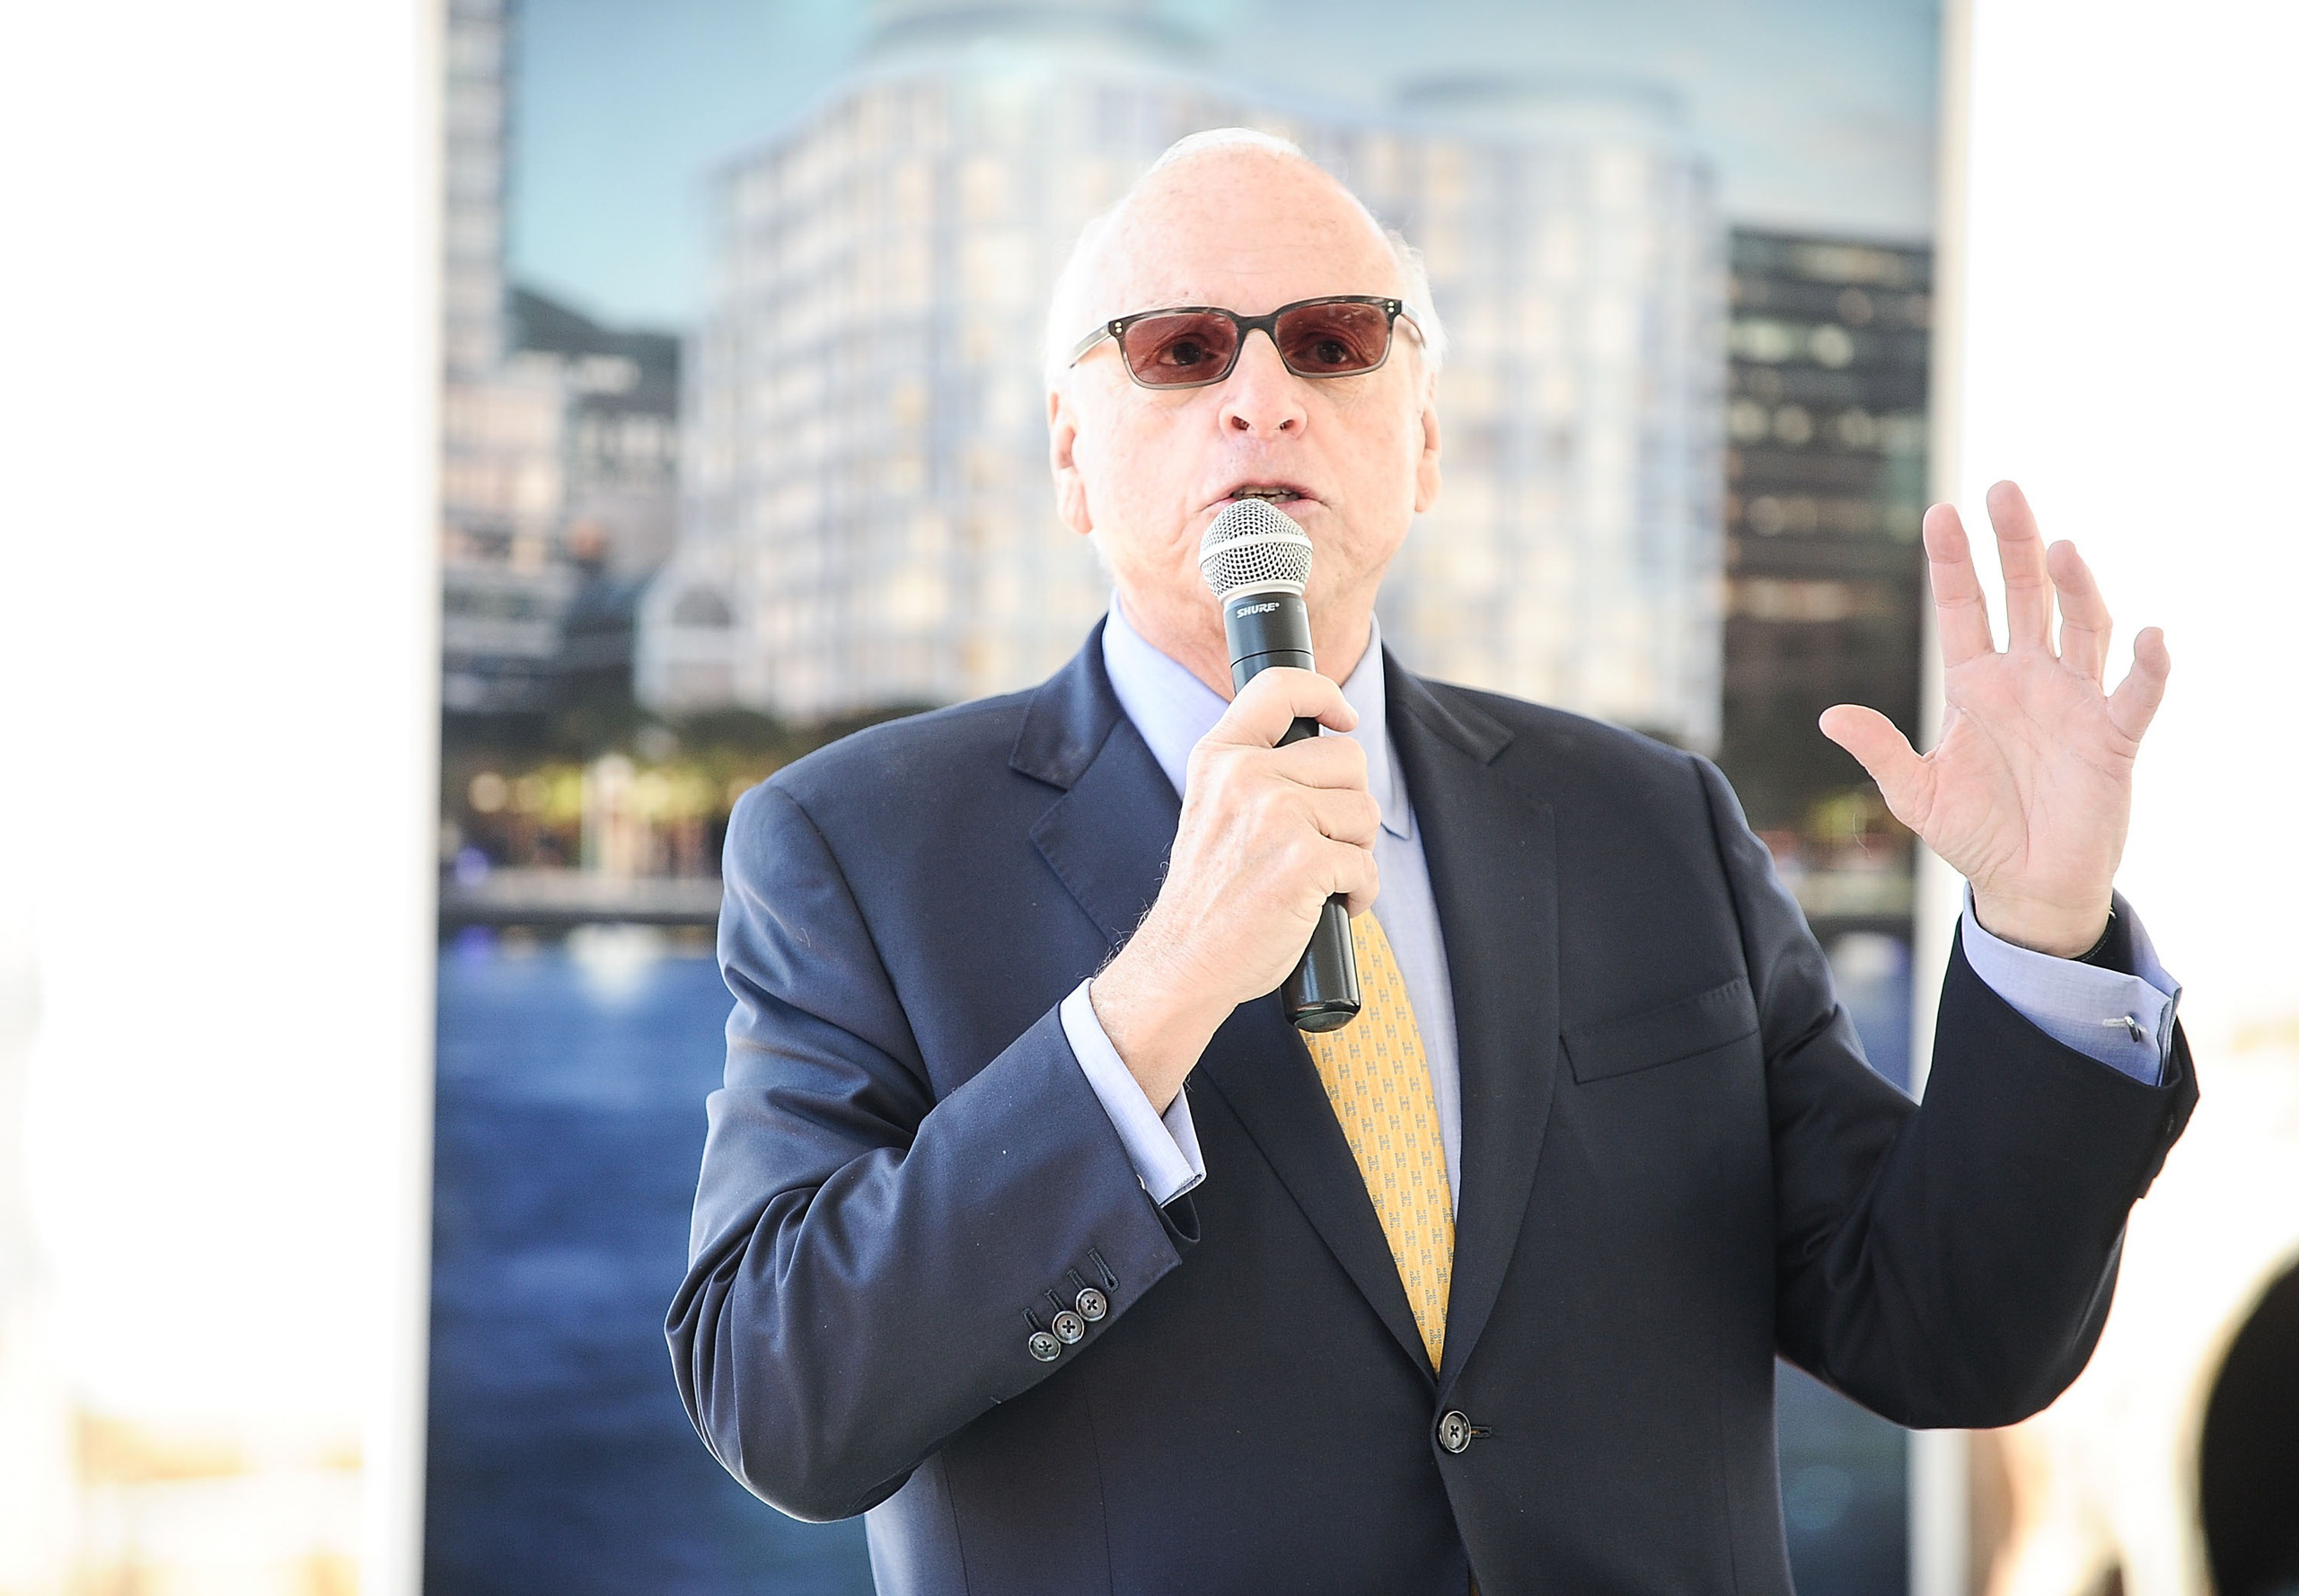 President of Vector Group Ltd Howard Lorber speaks during the groundbreaking ceremony of 160 Leroy Street in New York City on April 14, 2016.